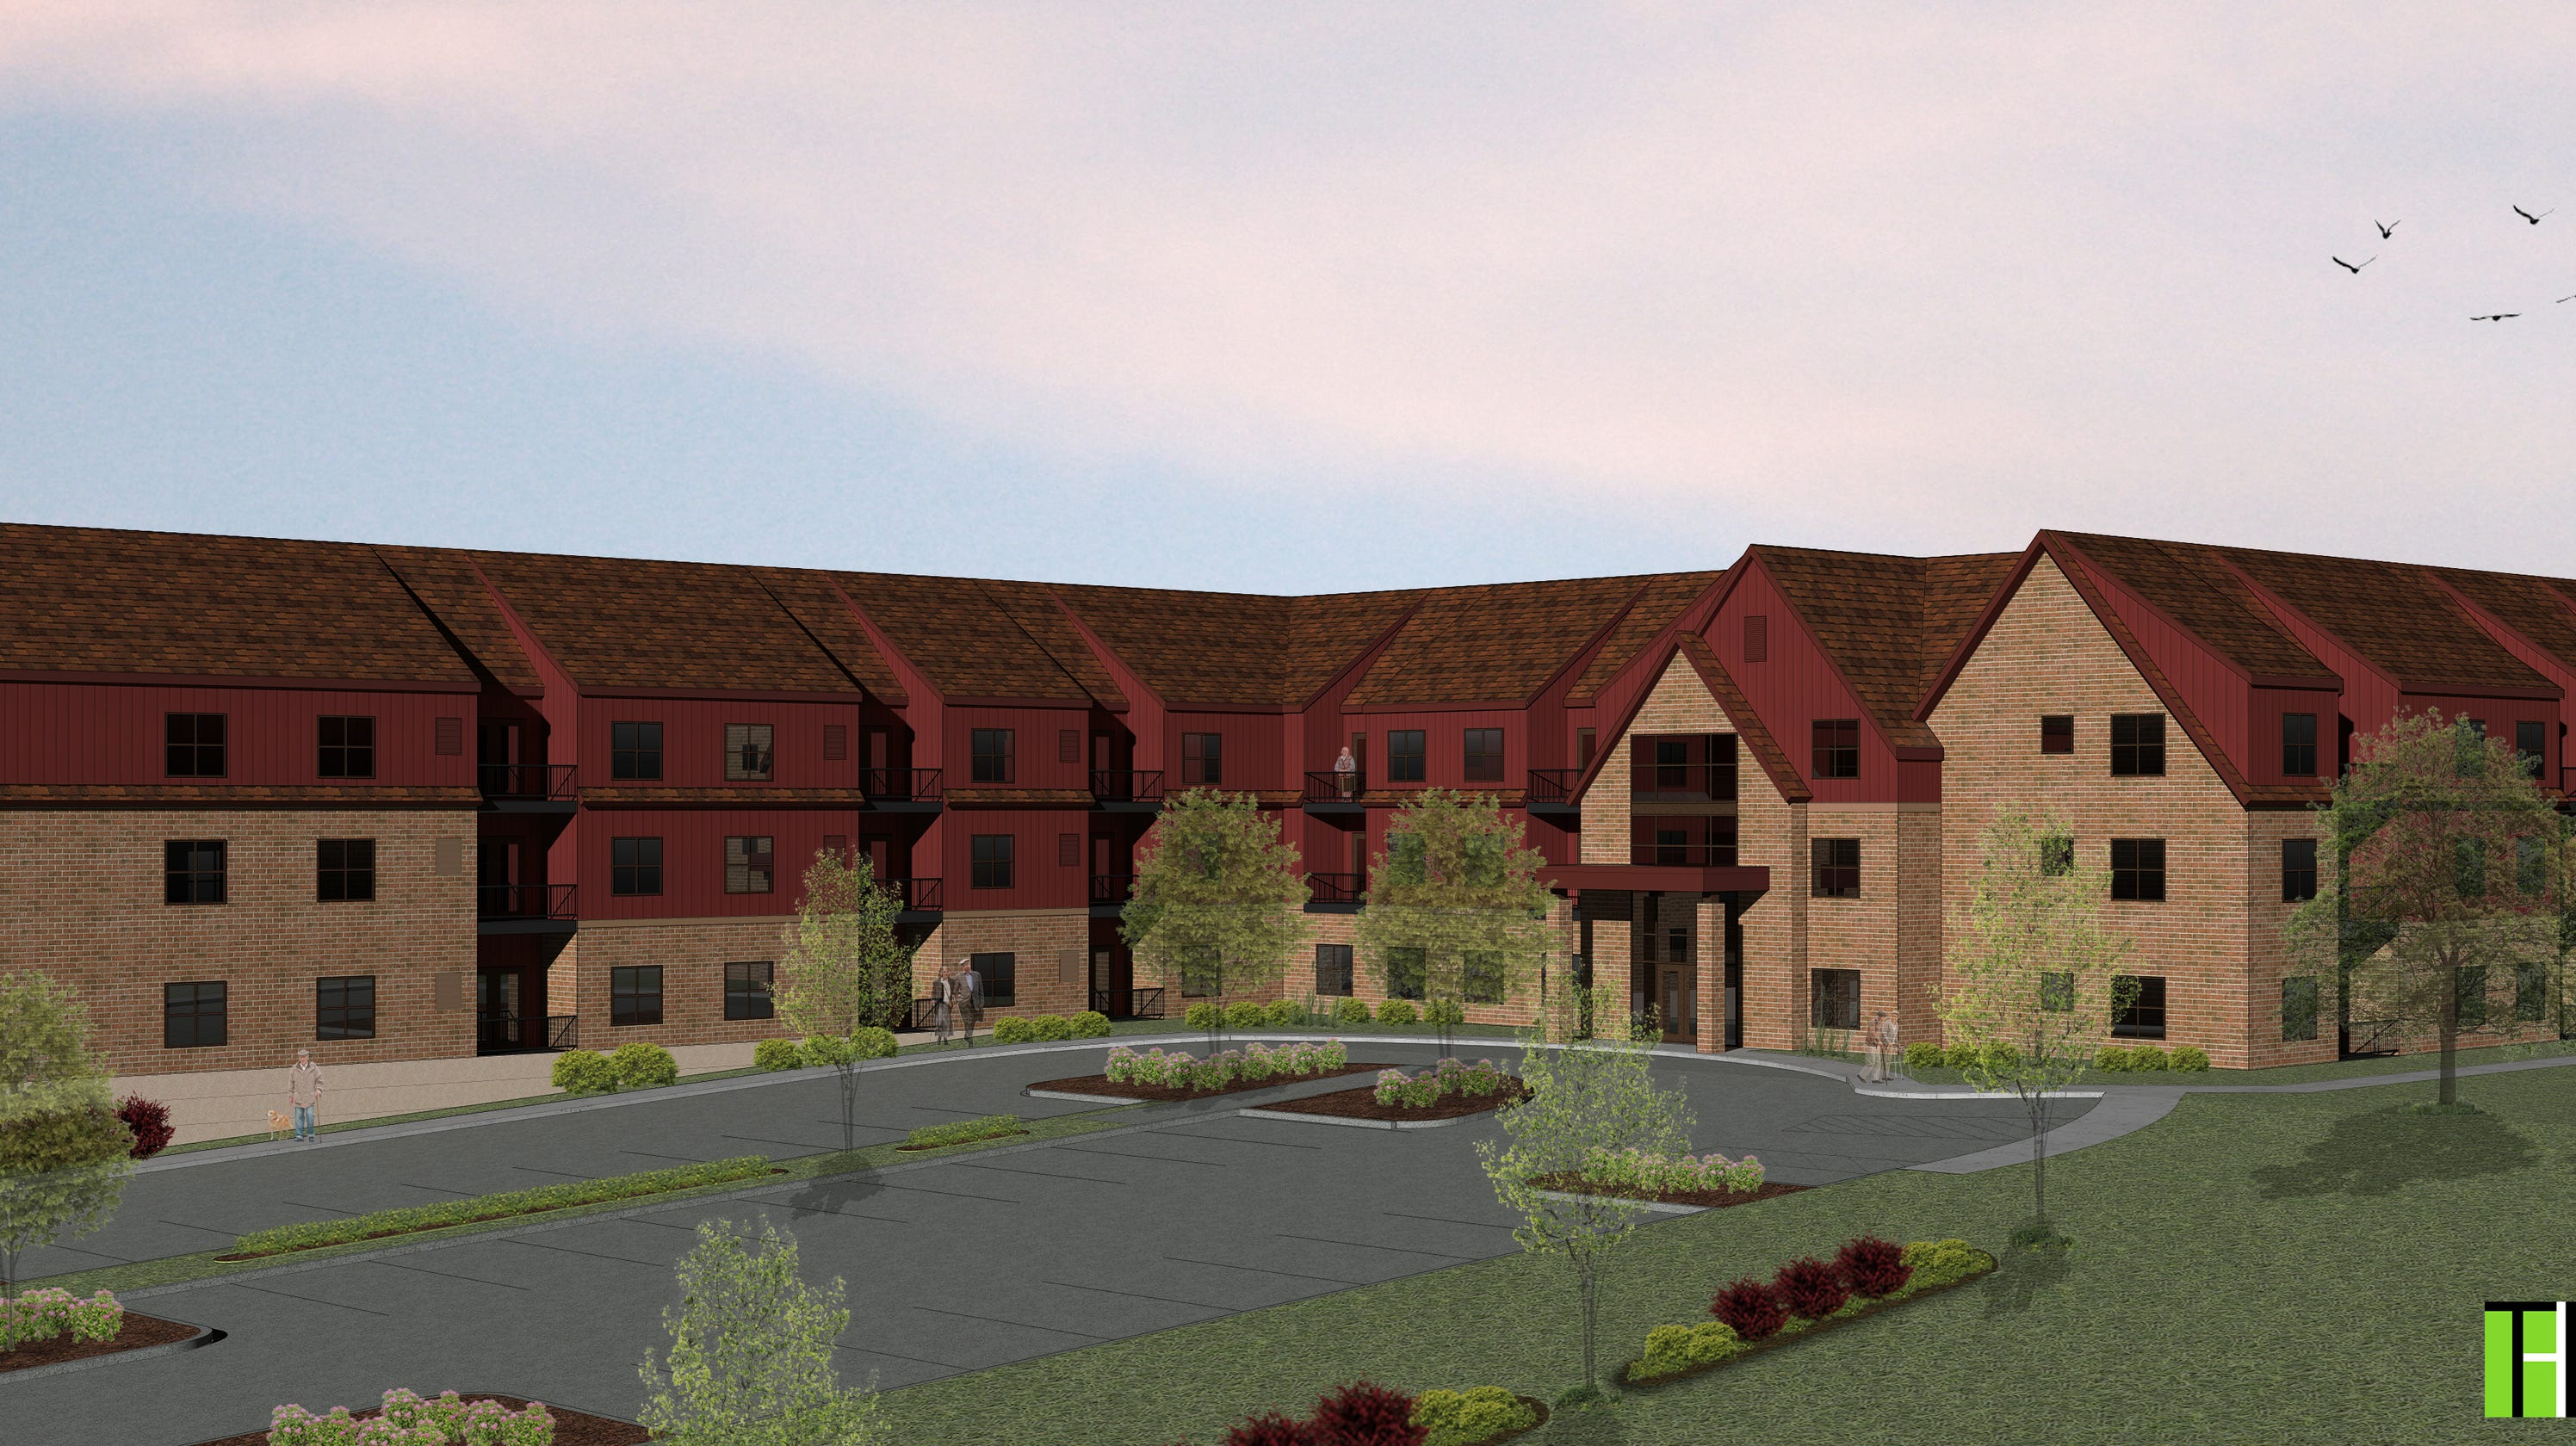 Another senior development approved in Oconomowoc